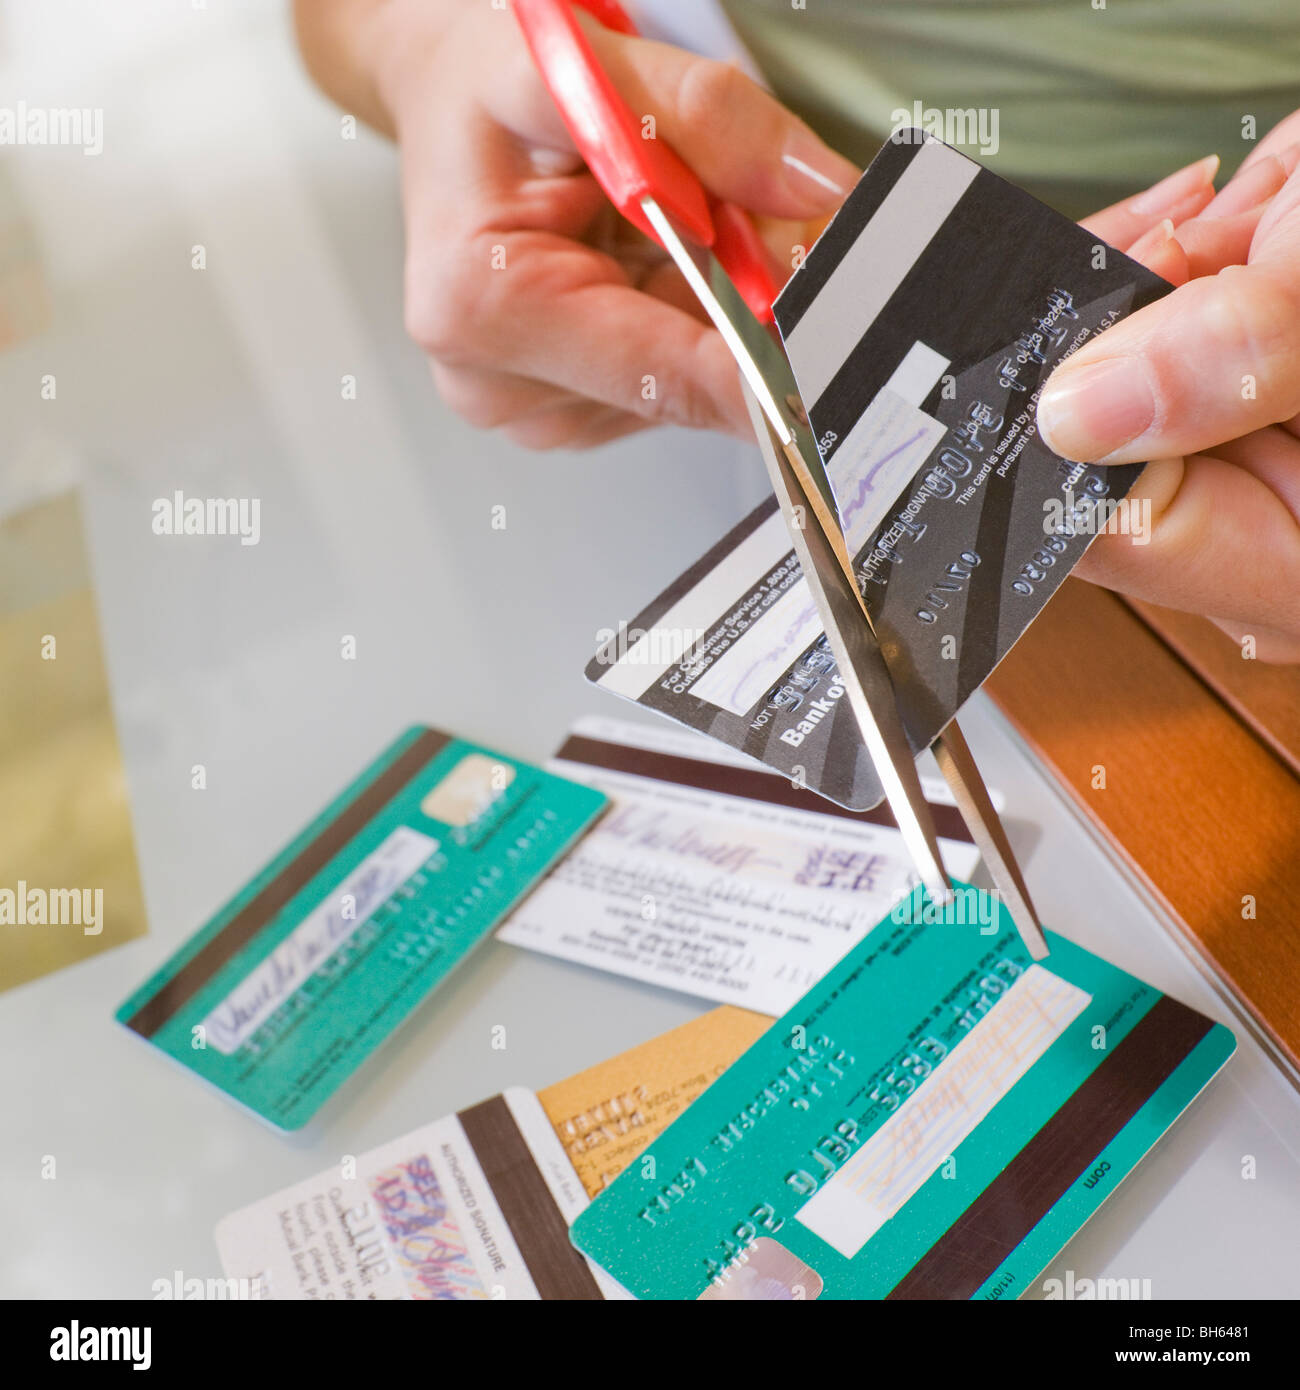 Woman cutting credit cards - Stock Image